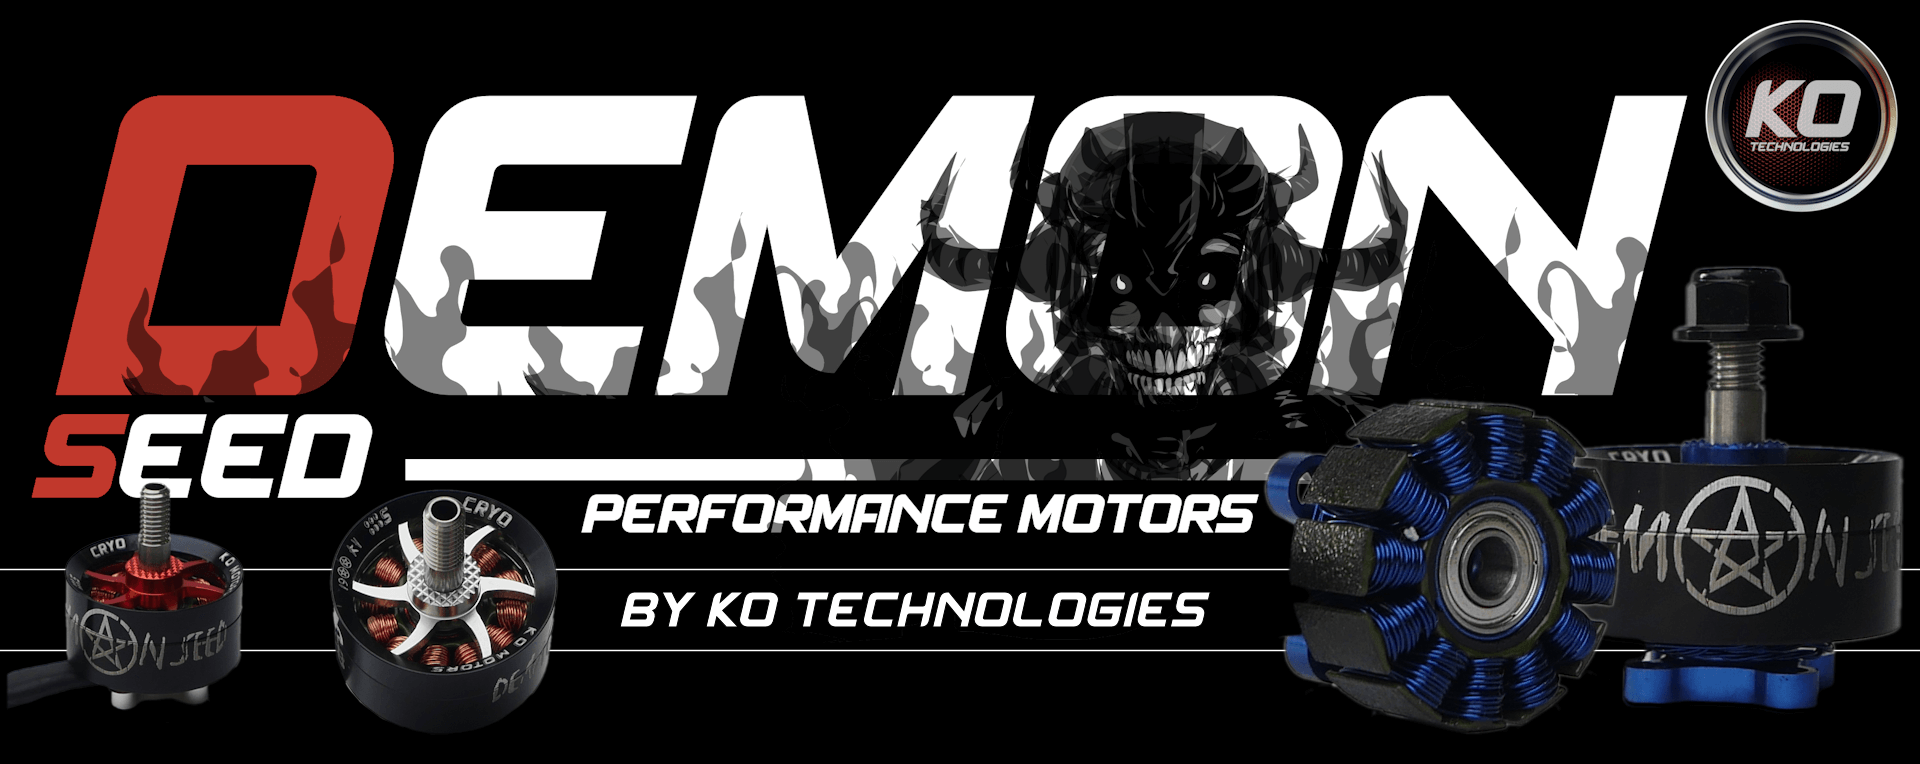 KO Demon Seed motor for FPV race drone with camera